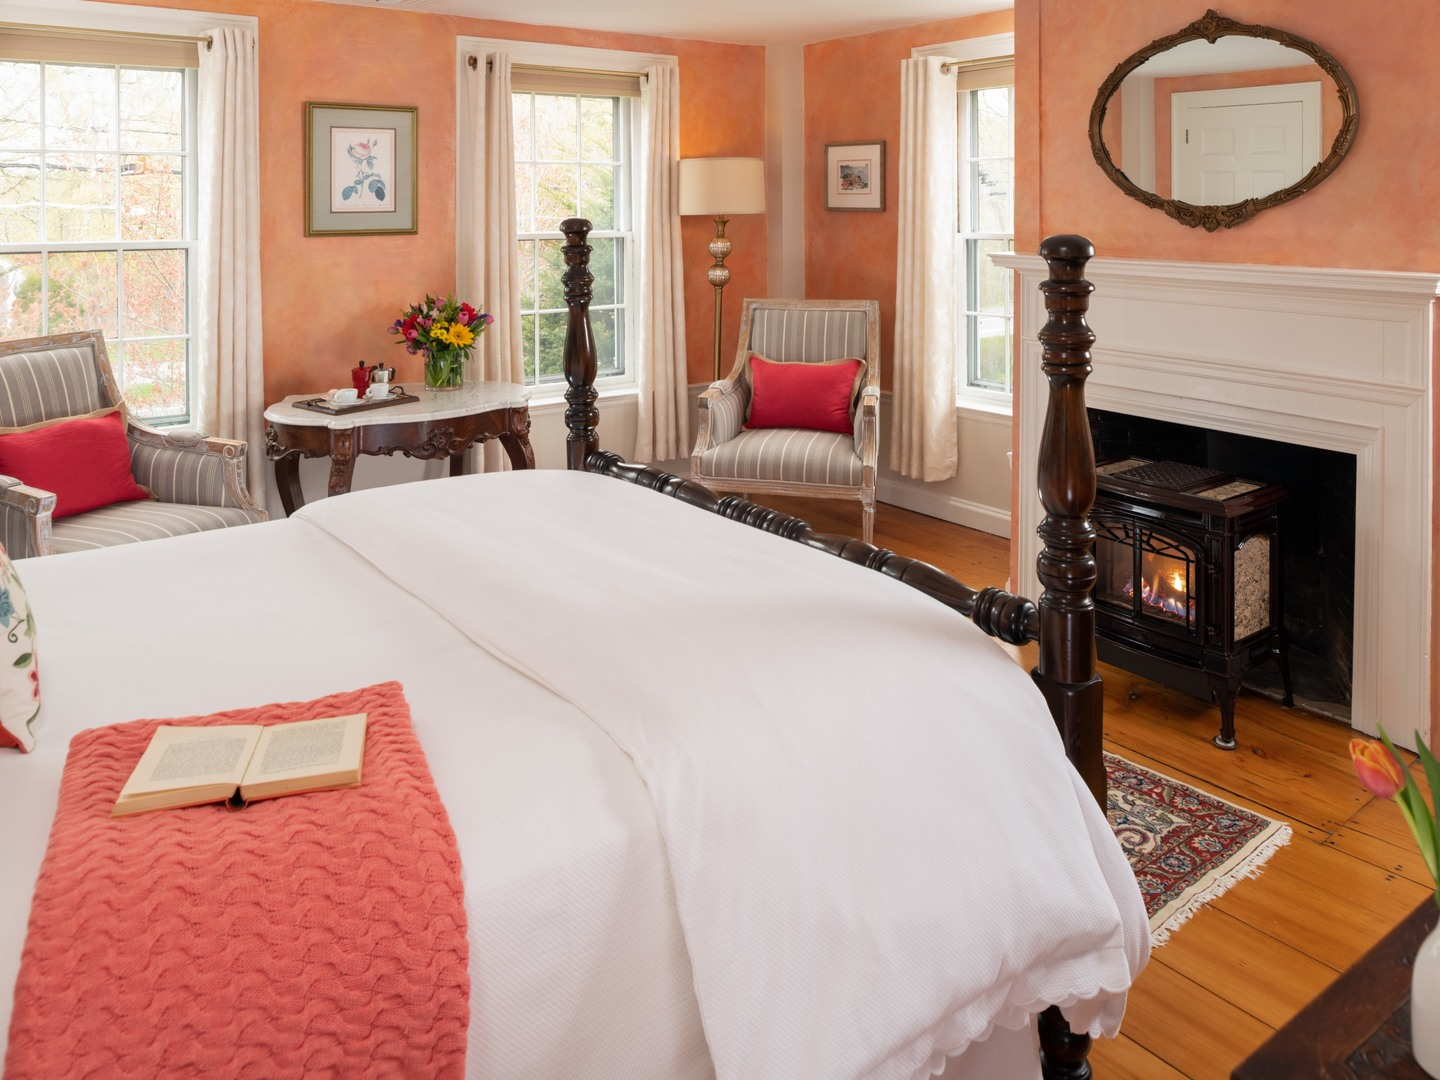 A bedroom with a large bed in a room at Candleberry Inn on Cape Cod.